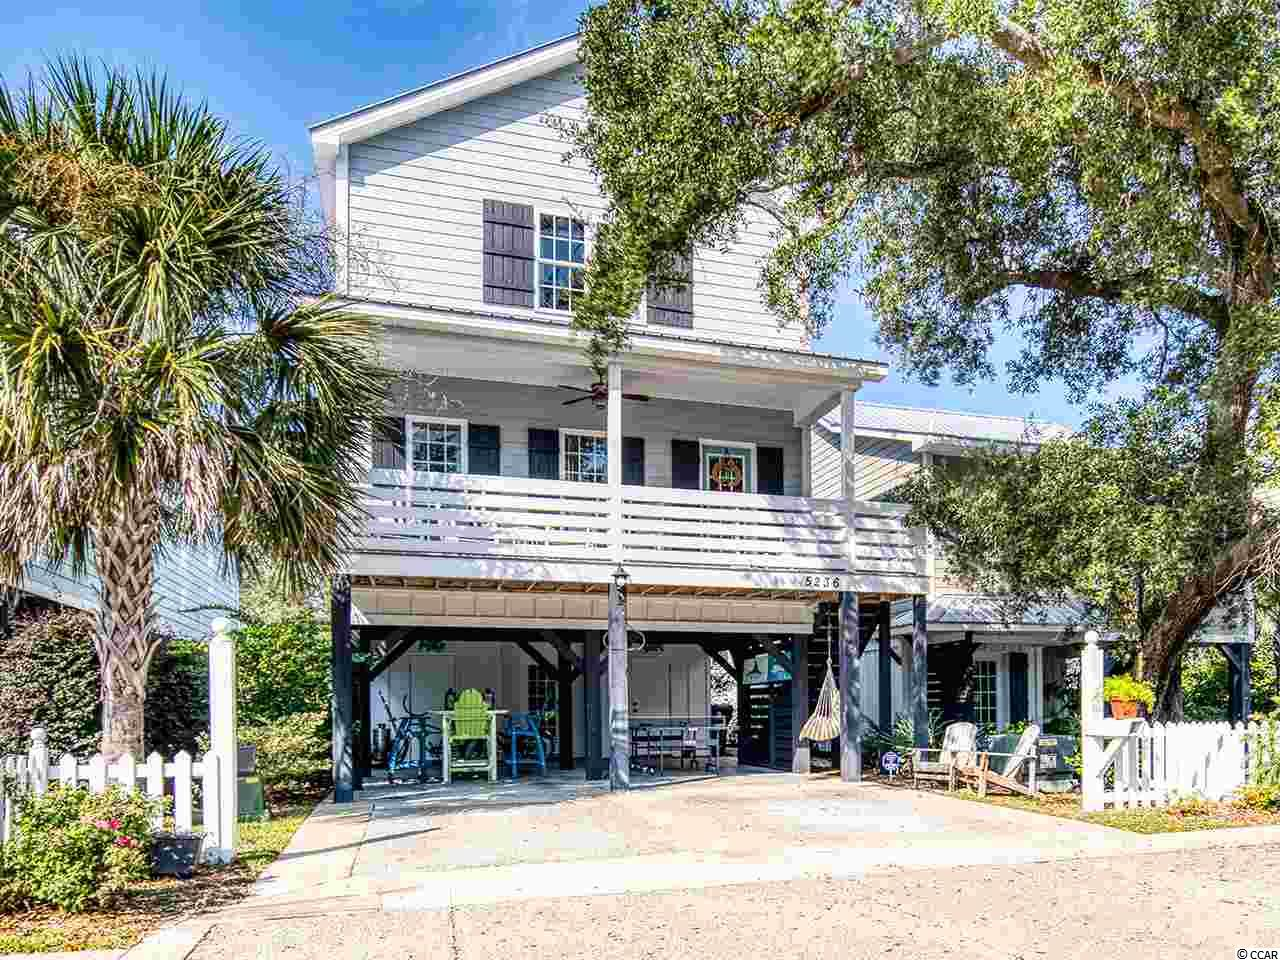 Live your best life in the heart of Murrells Inlet in this beautiful 3 bedroom 3.5 bath raised beach house. Located east of bypass 17 and in close proximity to the water. Perfect for guests, the ground floor offers a bedroom, full bath and walk in closet with private entrance, also separate from the rest of the house. The main floor offers an open floor plan with custom build ins, cabinetry, and wainscoting throughout the living and dining areas. Kitchen was remodeled in 2019. Enjoy an afternoon cocktail on the spacious front porch. The top level features a master suite with vaulted ceilings, laundry room and additional bedroom and bath. The bottom floor also features two attached storage areas and back patio.   Only minutes from the popular Murrells Inlet Marshwalk that features numerous waterfront restaurants, watersport opportunities and festivals throughout the year and just a few miles south the Murrells Inlet Bike Trail, Huntington Beach State Park and Brookgreen Gardens. Only 20 minutes from the Myrtle Beach International Airport and other popular attractions, such as live musical and theater productions and a vibrant nightlife.